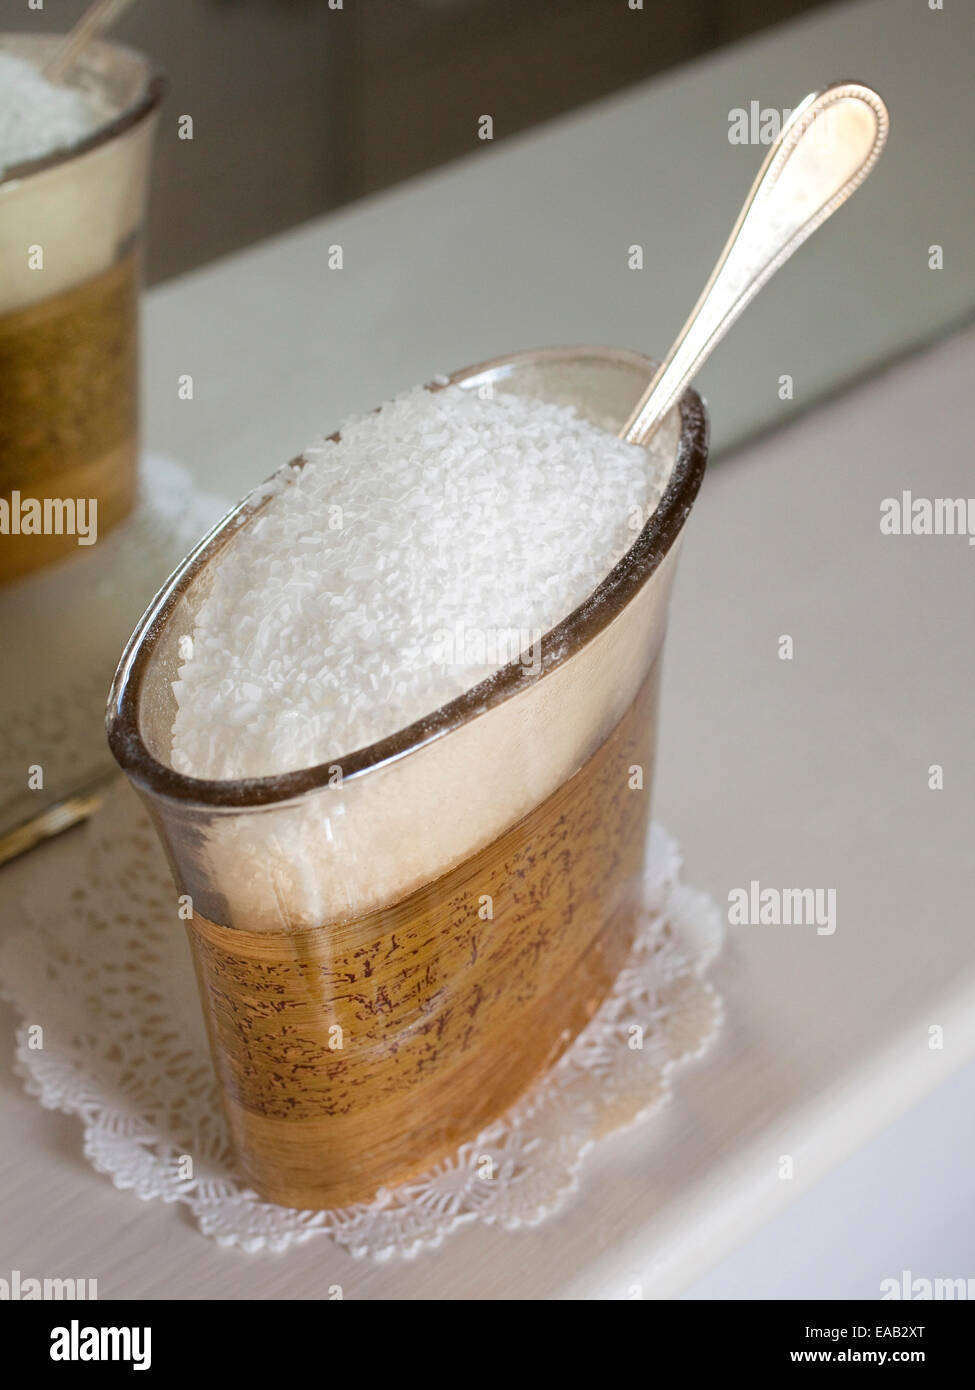 Bath salts and silver spoon in glass container in bathroom. - Stock Image